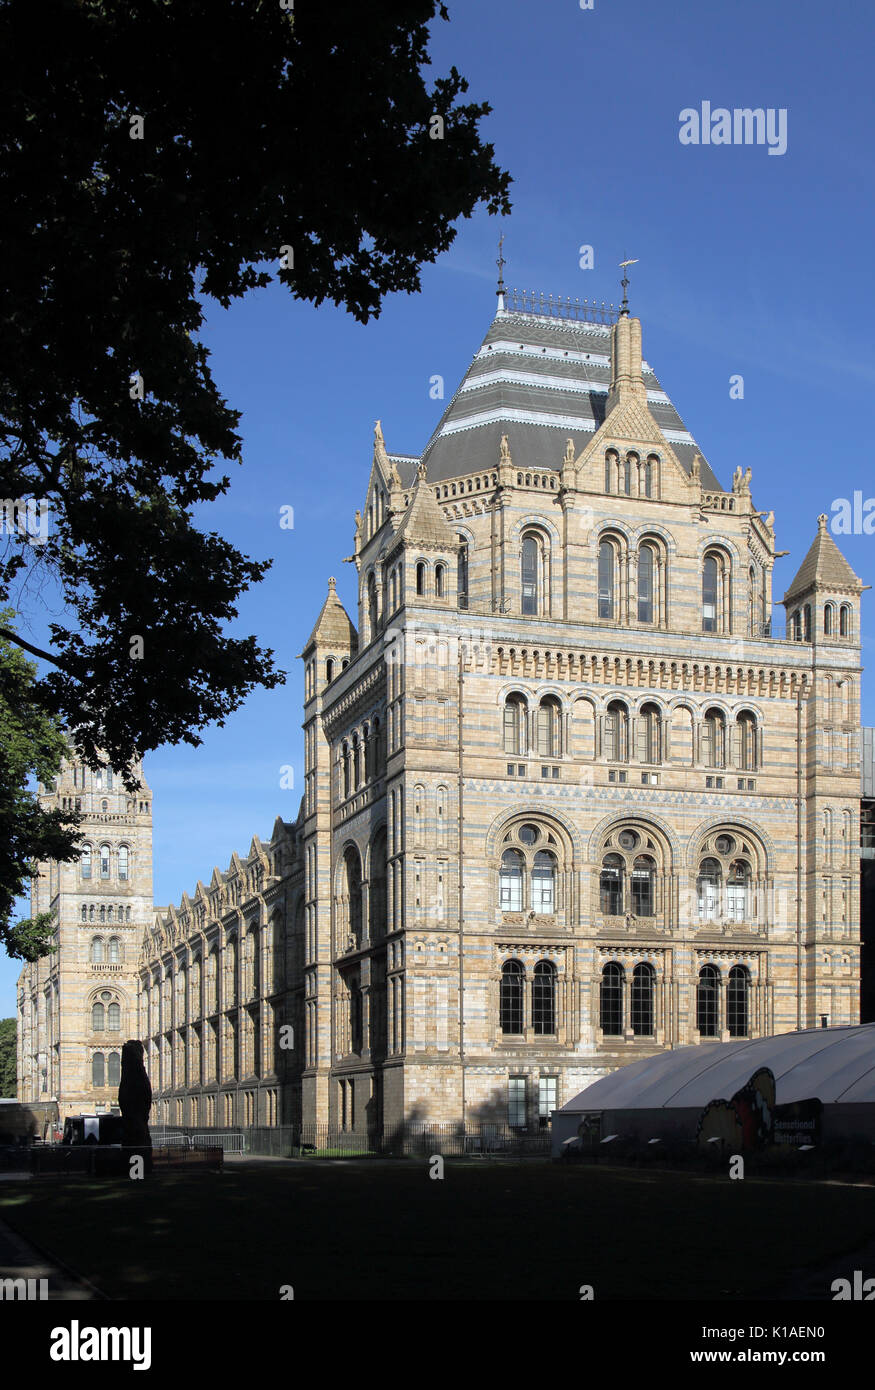 natural history museum south kensington london - Stock Image